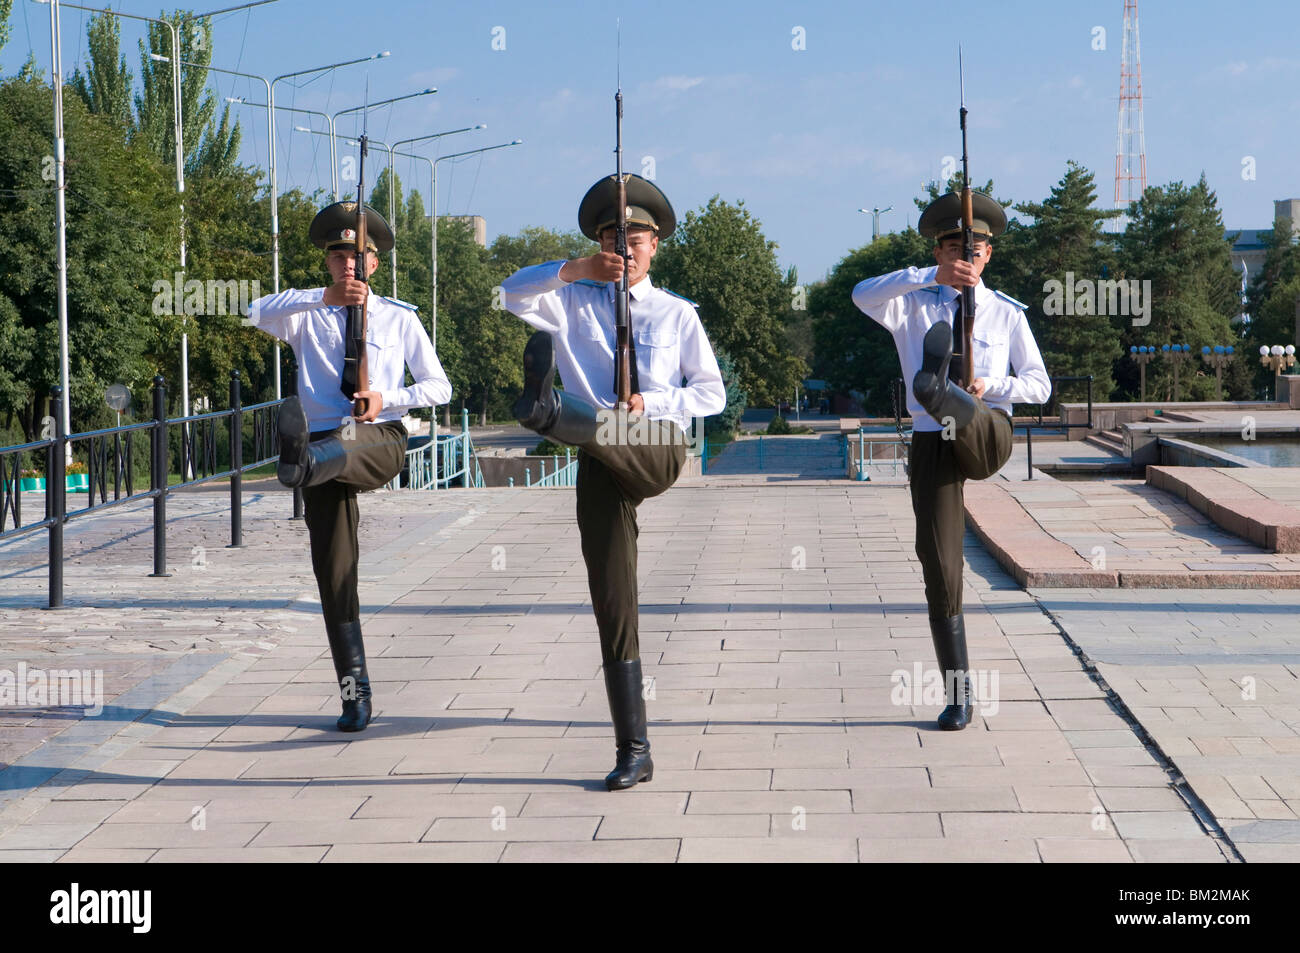 Soldiers on parade, Ala Too Square, Bishkek, Kyrgyzstan - Stock Image